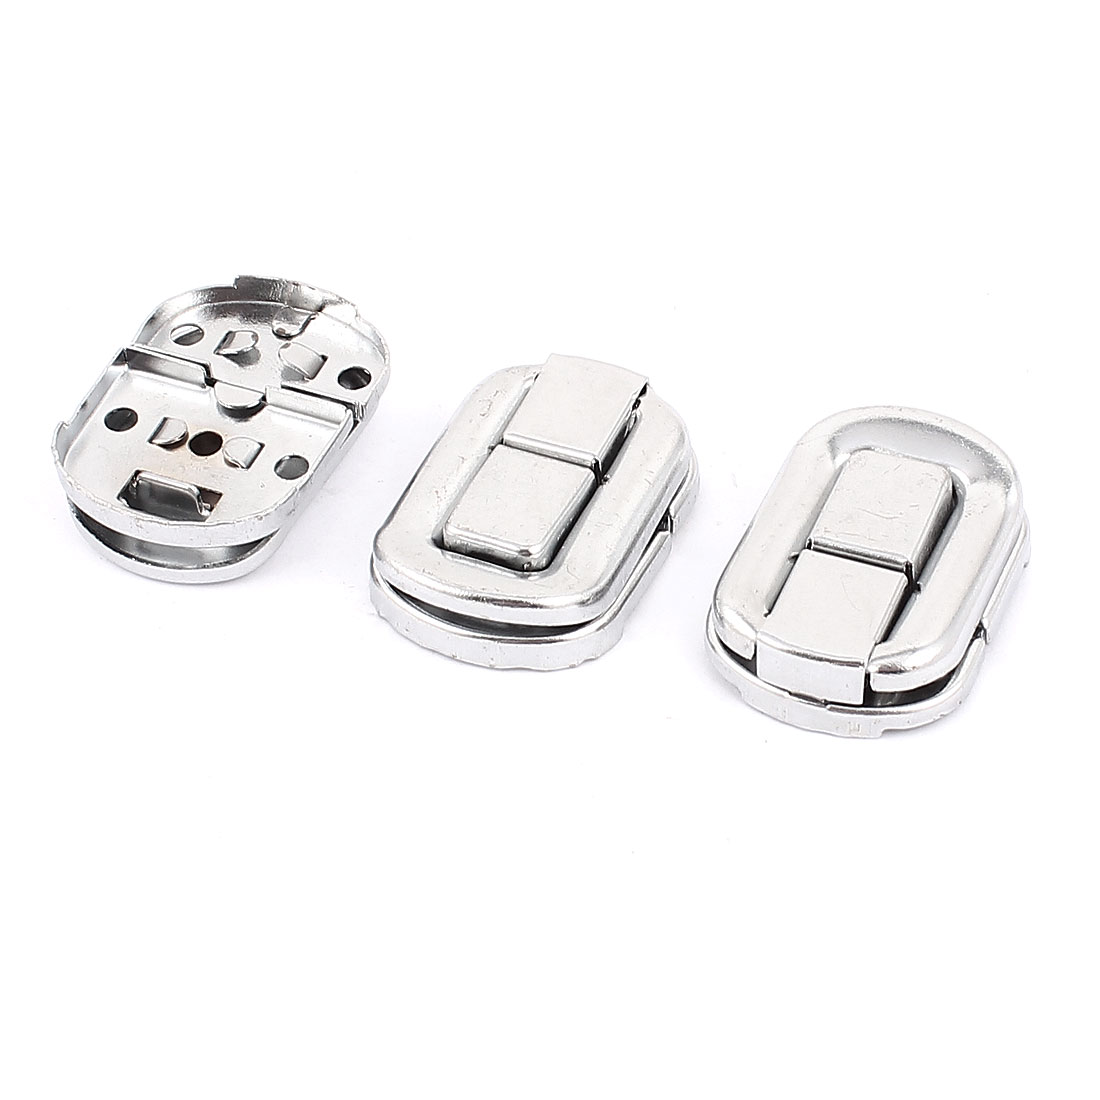 37.5mm x 27mm Luggage Suitcase Chest Metal Toggle Catch Latch Silver Tone 3Pcs